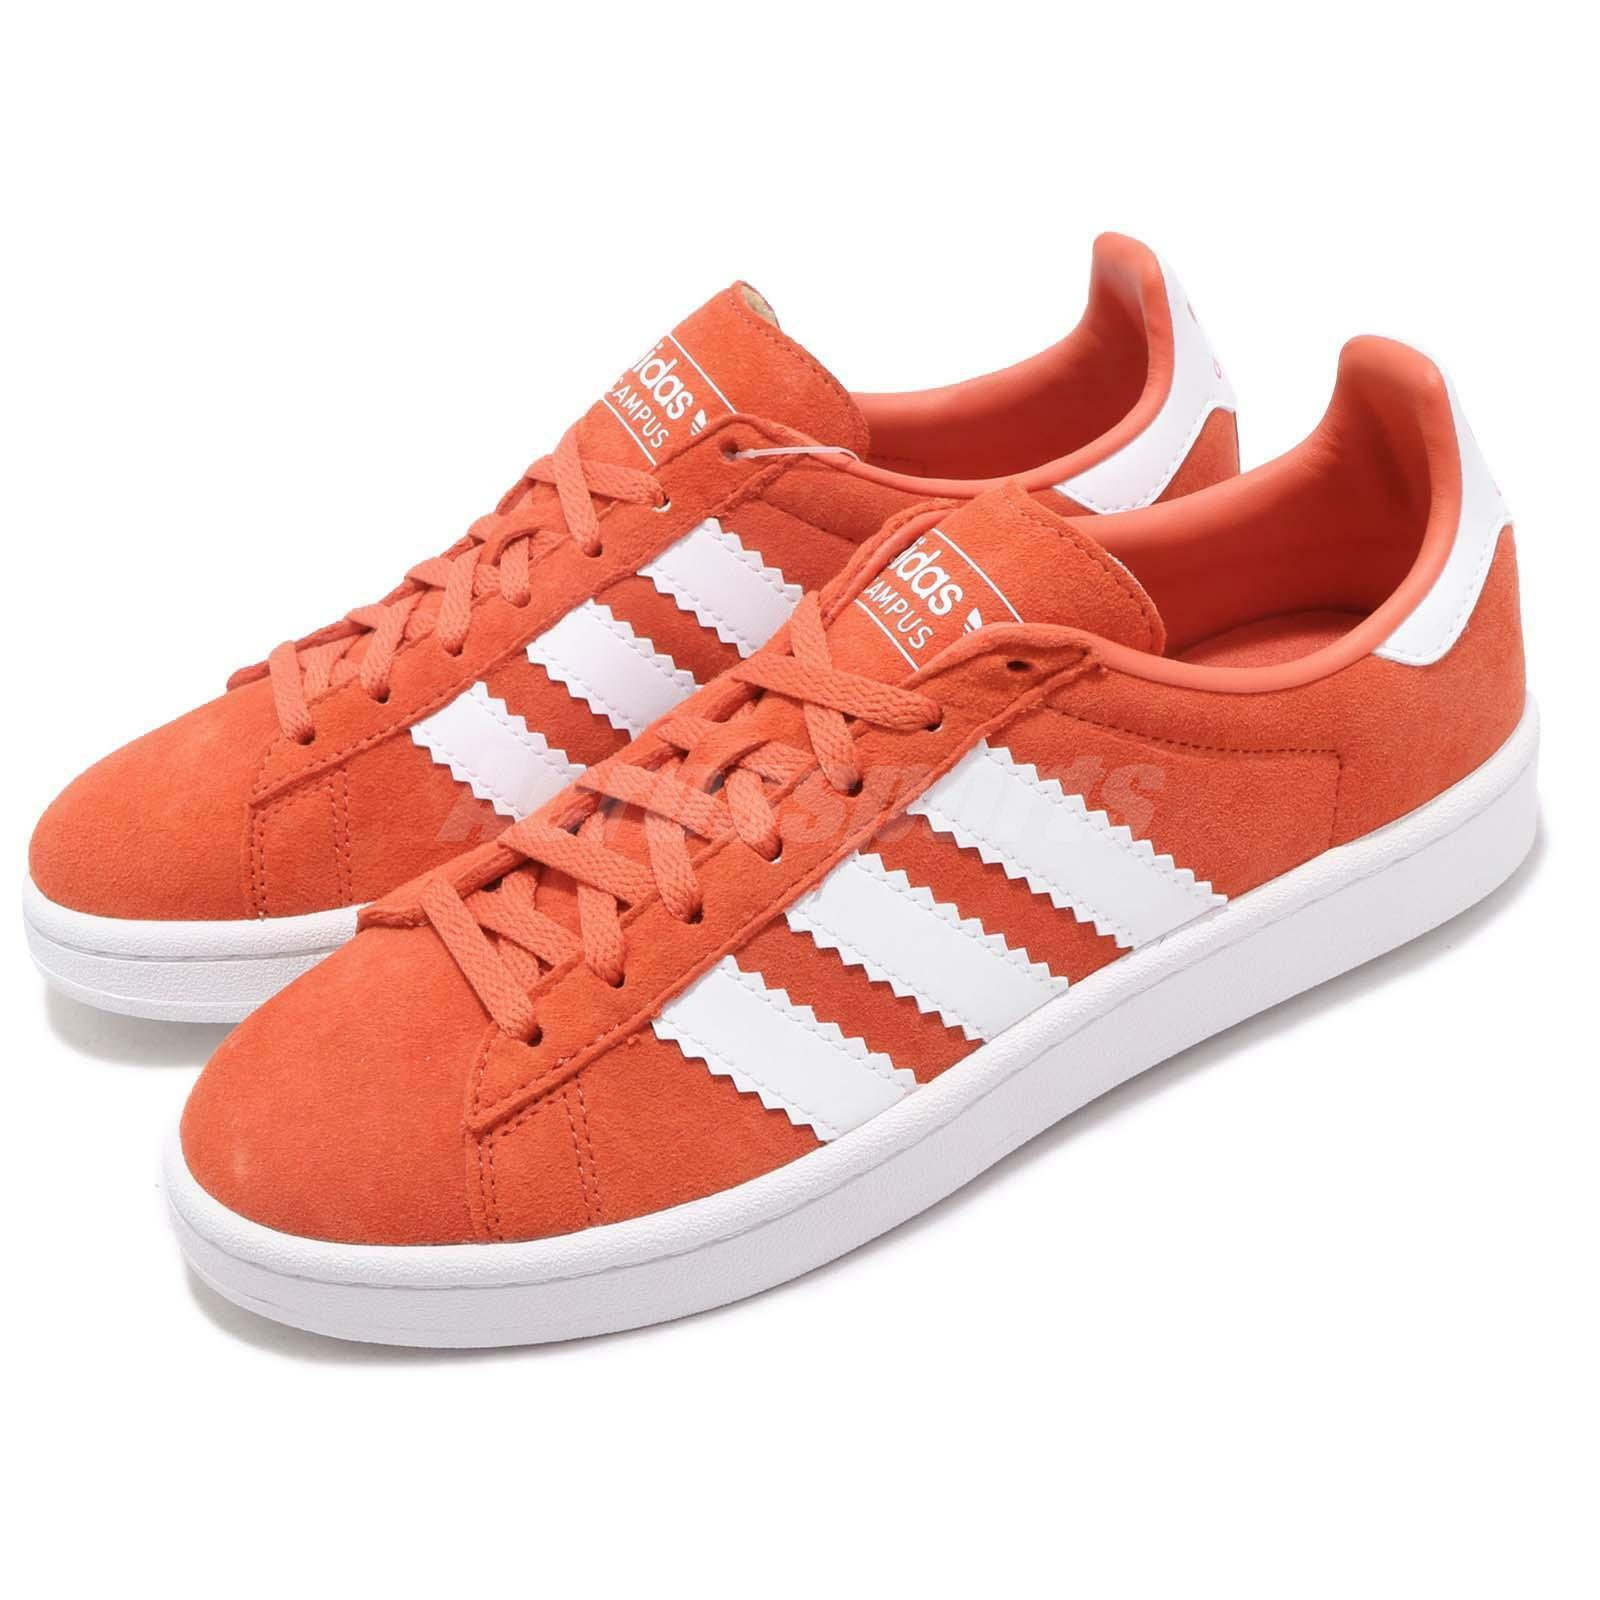 Adidas Originals Campus W Raw Amber White Women Casual shoes Sneakers CG6034